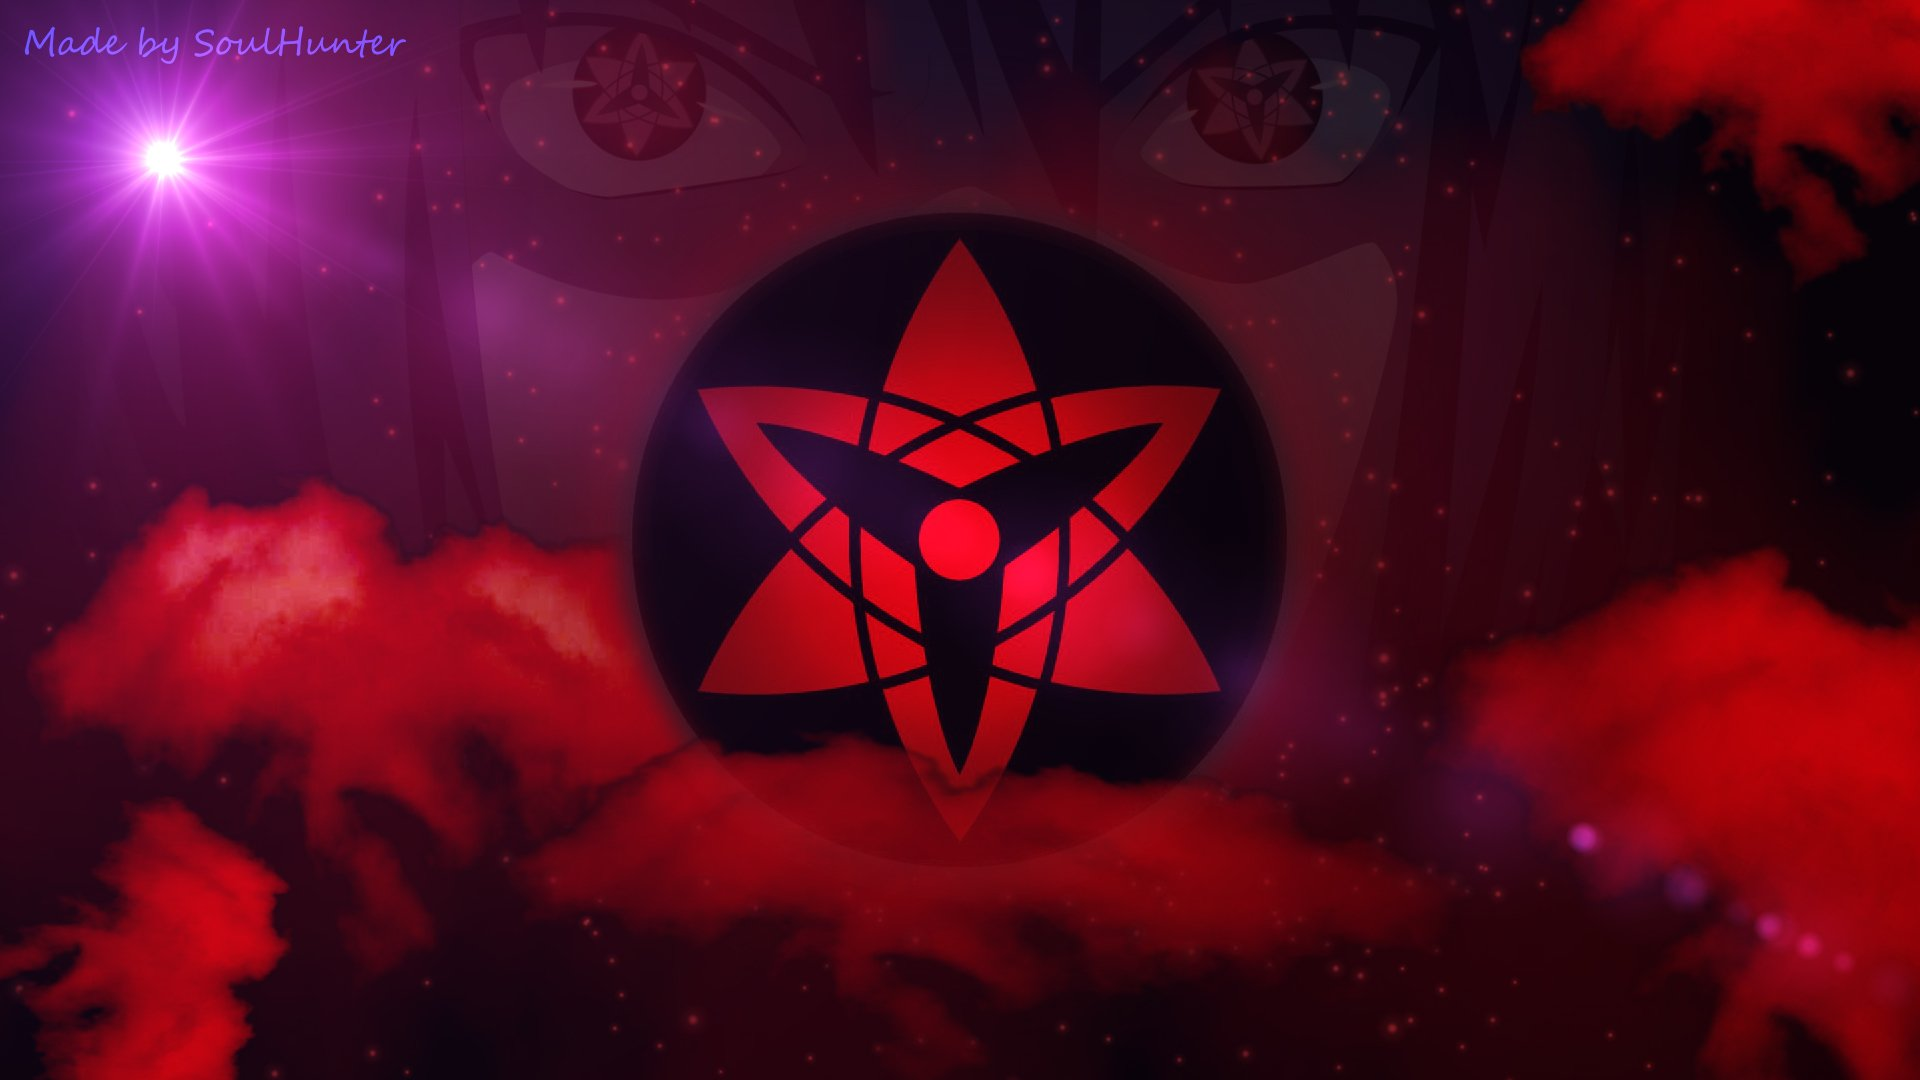 Sasuke Uchiha Sharingan HD Wallpaper